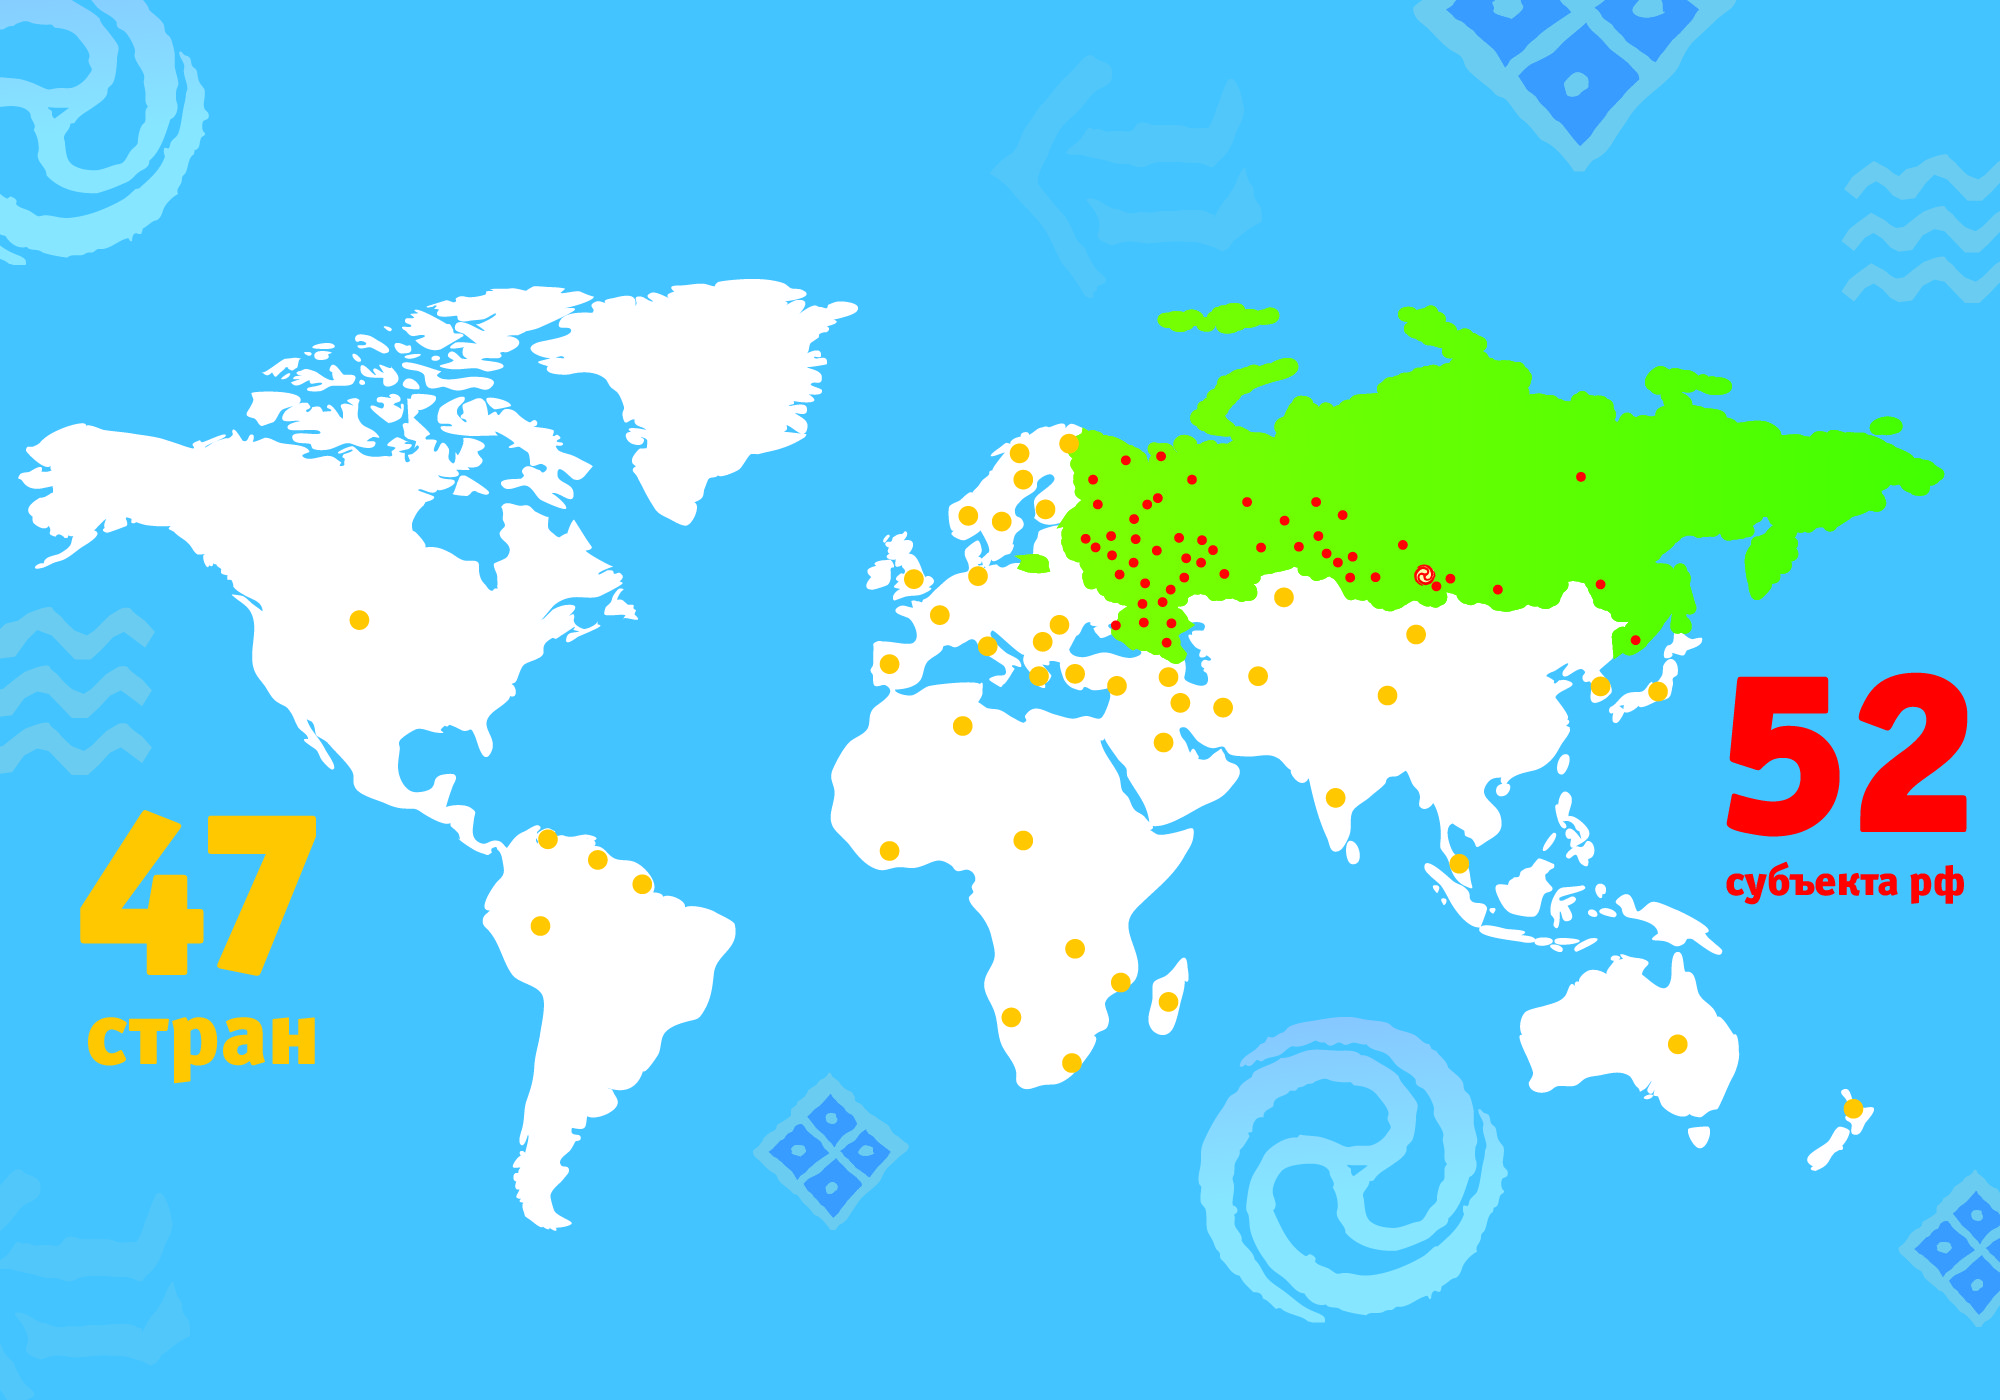 WORLD of Siberia Festival has covered 5 continents!